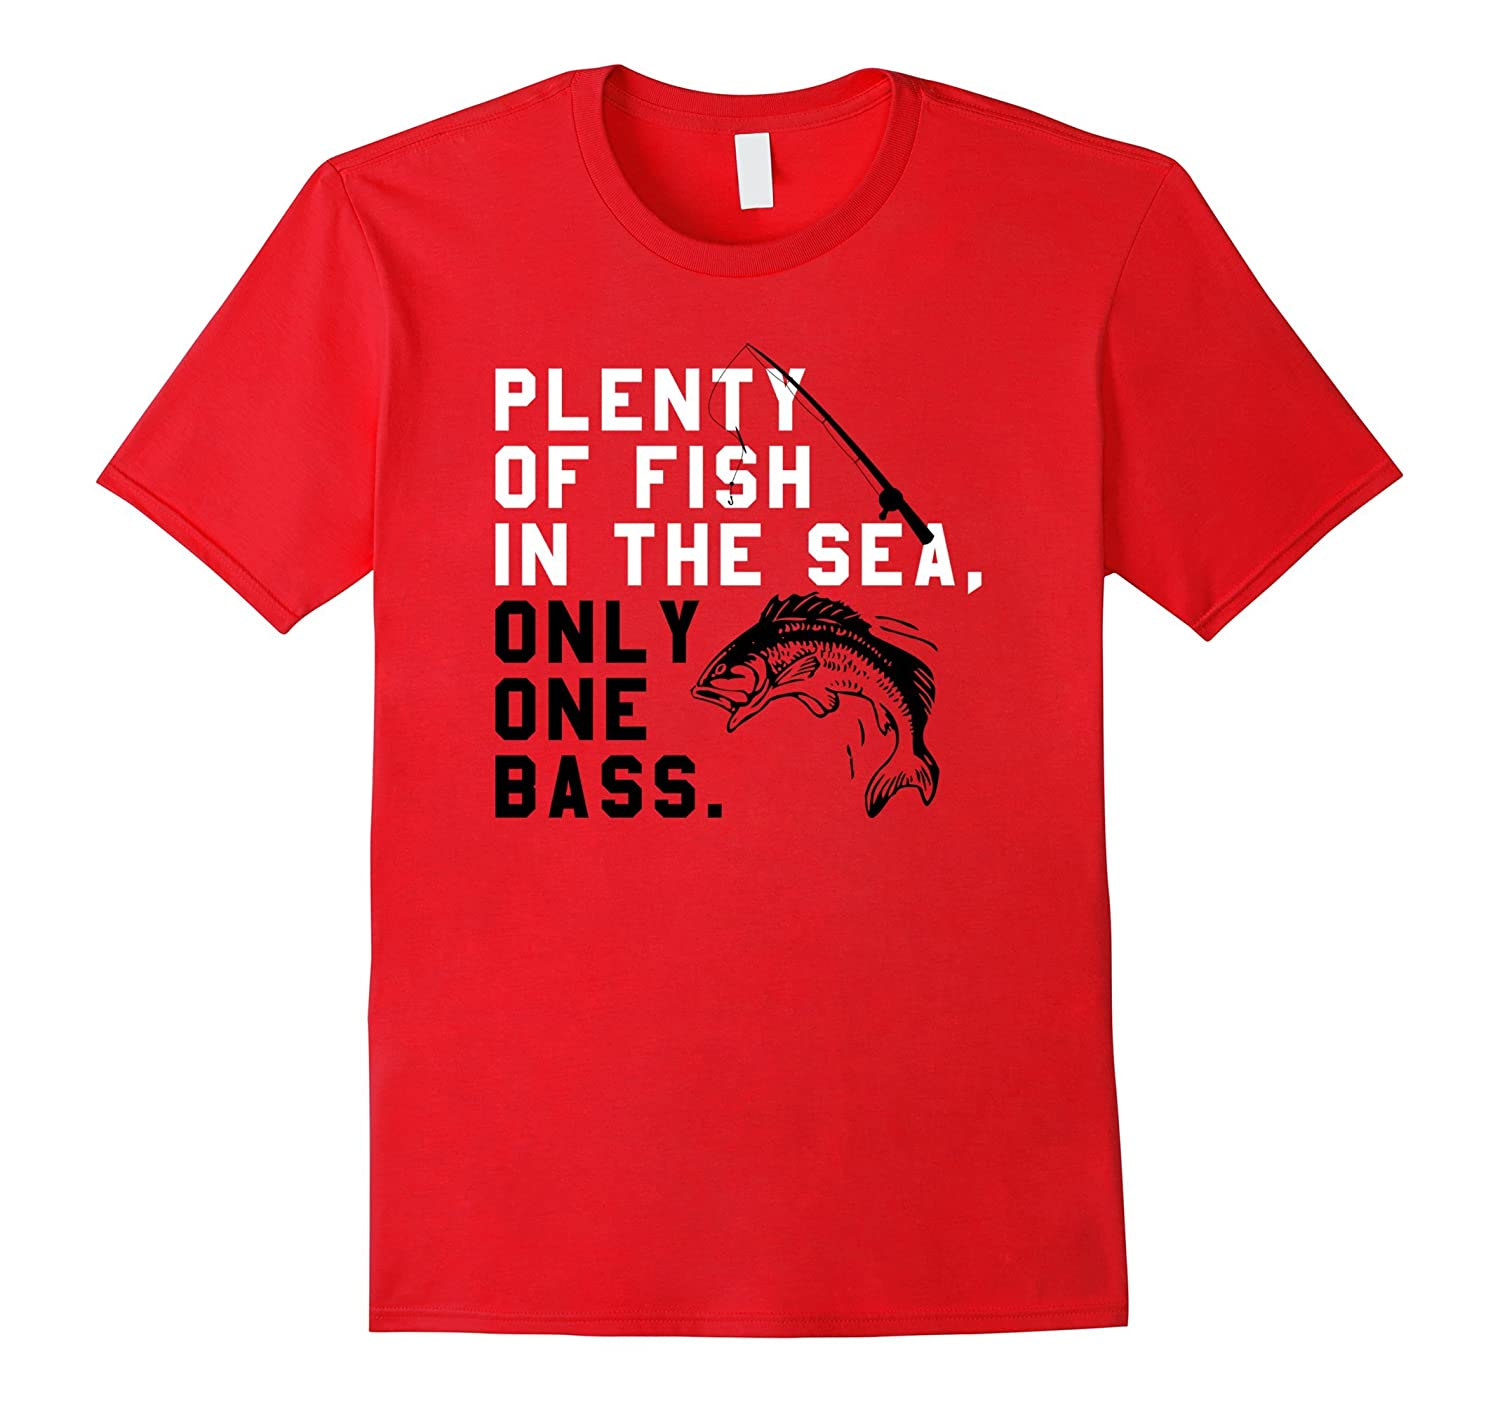 Plenty of fish in the sea only one bass fishing gift t for Www plenty of fish com